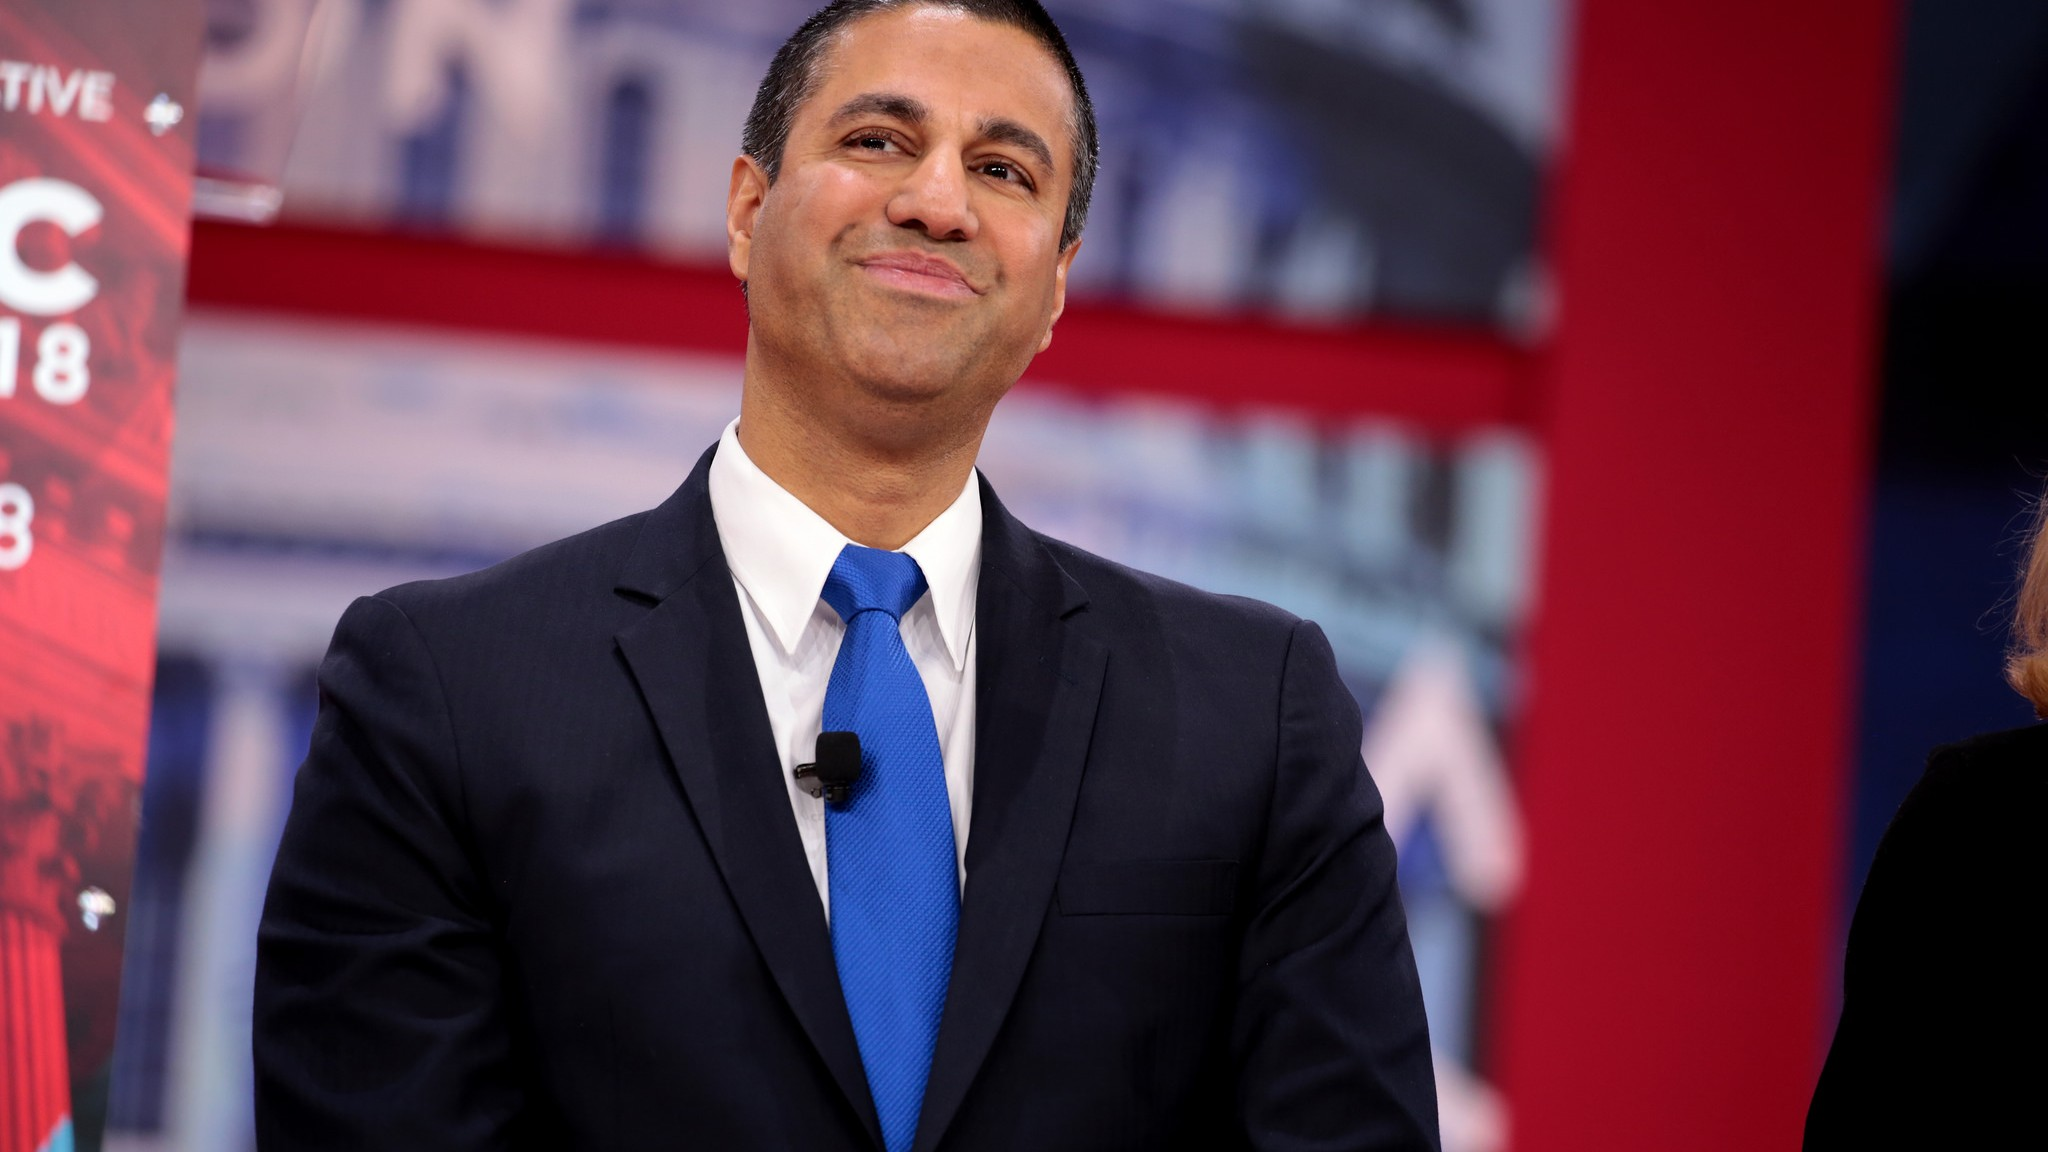 The Current Definition of 'Broadband' Is Too Slow and Ajit Pai Refuses to Change it – Ajit Pai is once again trying to keep the definition of broadband set at ankle height.